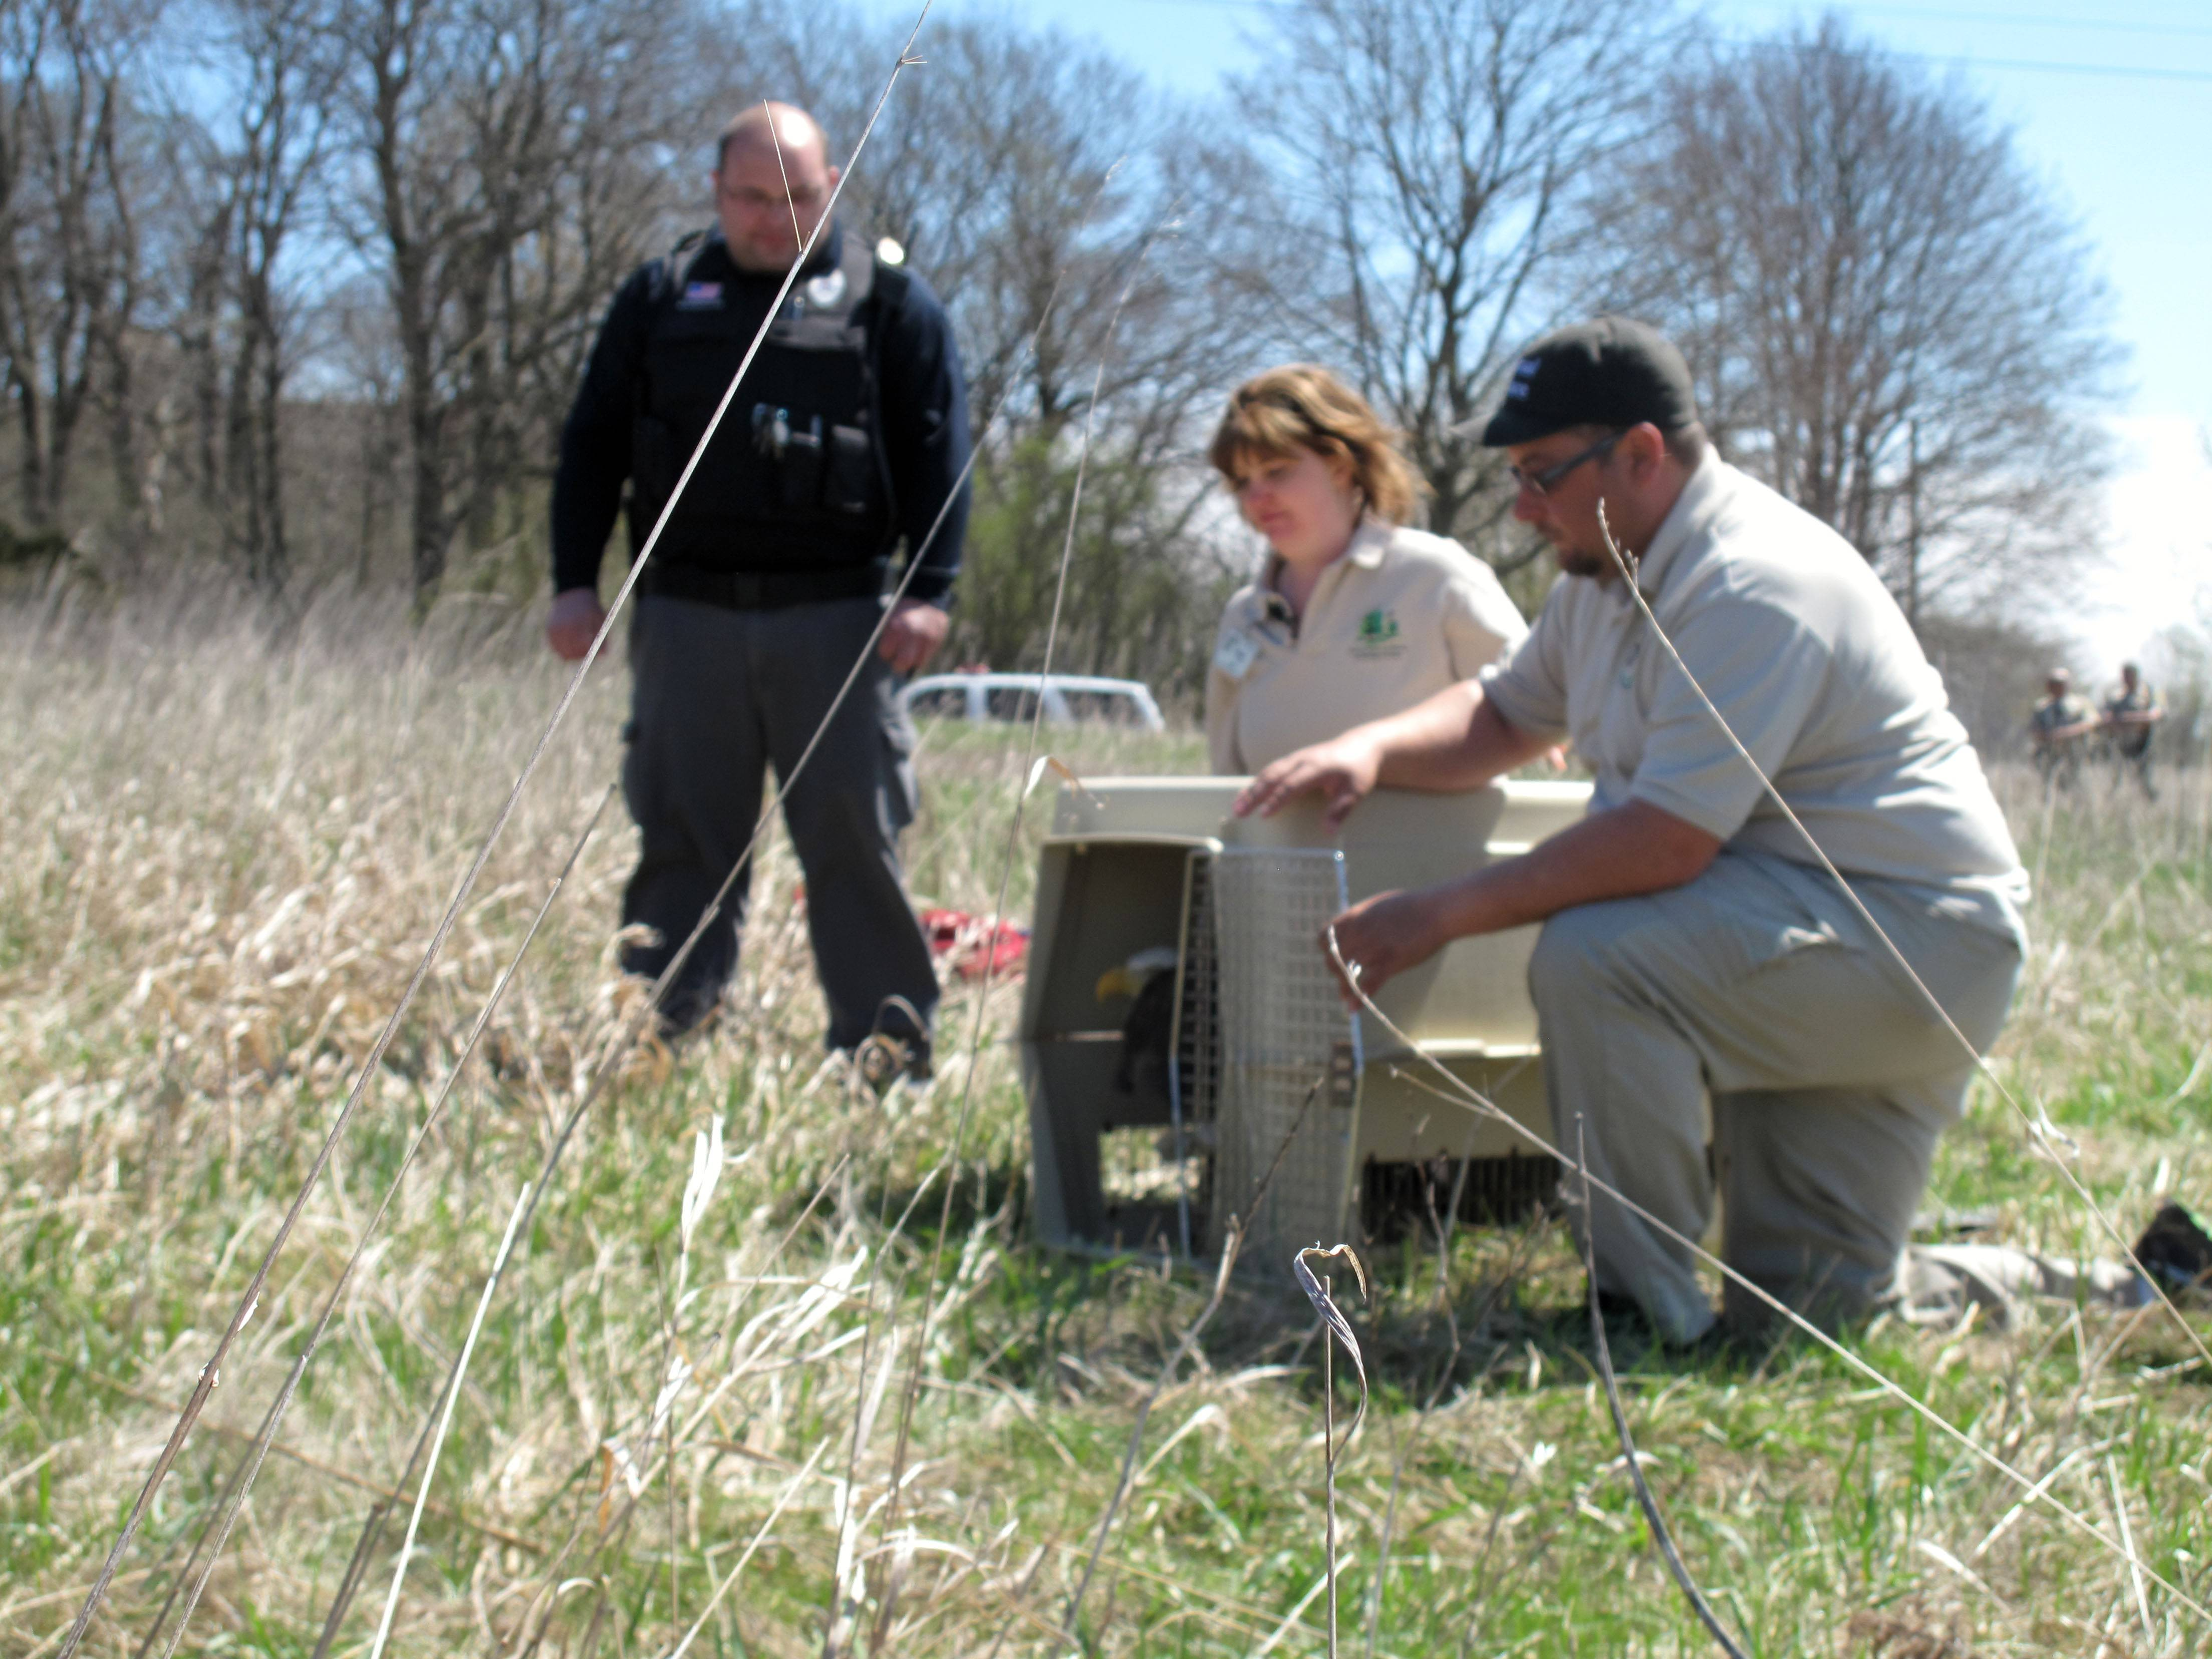 Robert Negrete of Stickney Township Animal Control opens a carrier containing a bald eagle about to be released Friday at Pratt's Wayne Foods Forest Preserve, while Rose Augustine of Willowbrook Wildlife Center and Barry Adamczyk of Oak Lawn Animal Control prepare for the moment of flight.